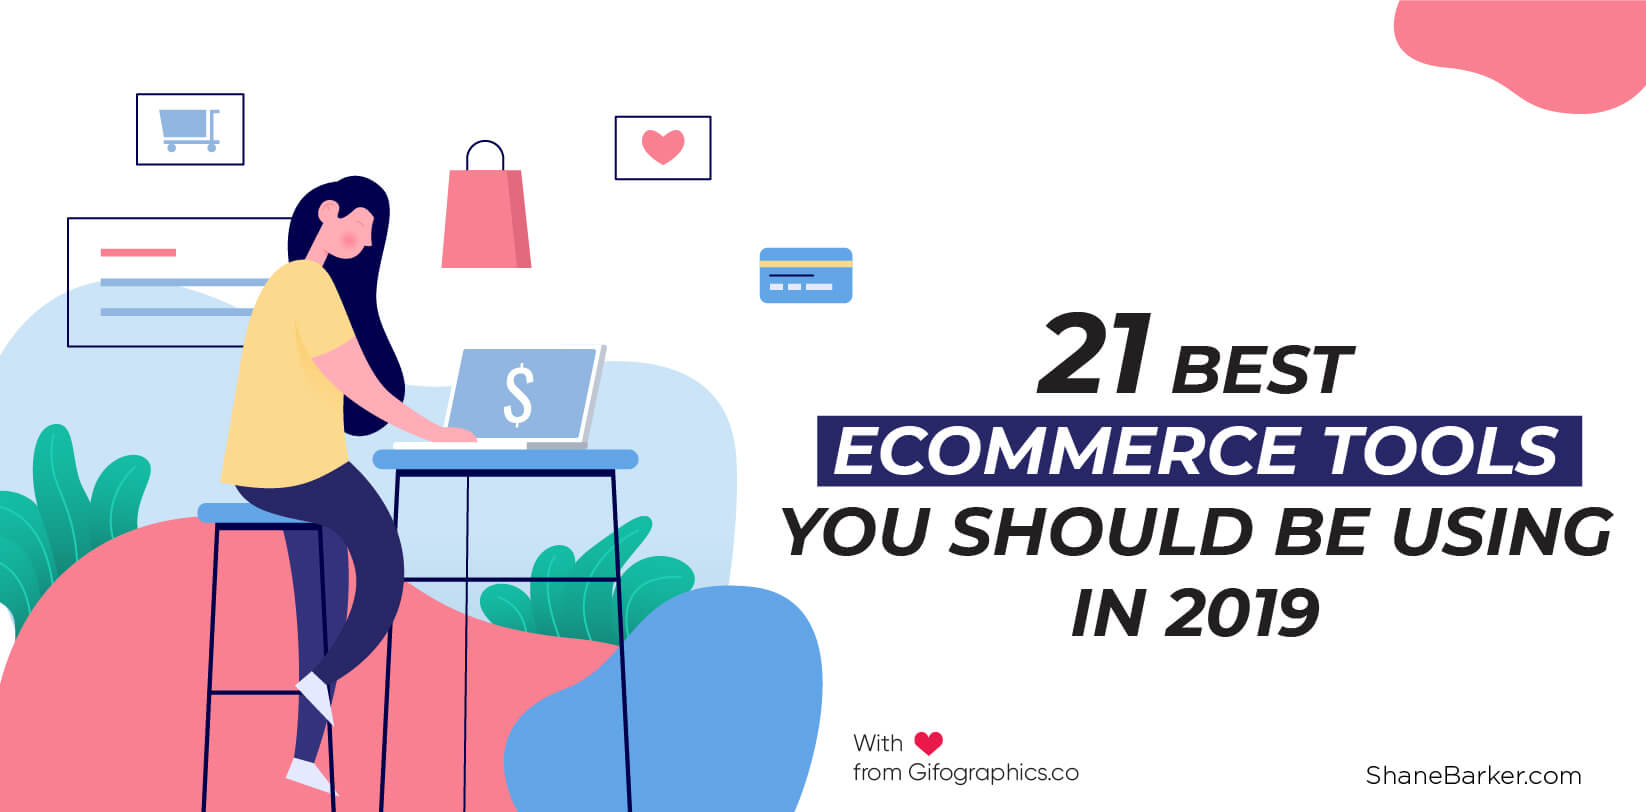 21 Best Ecommerce Tools You Should Be Using in 2019